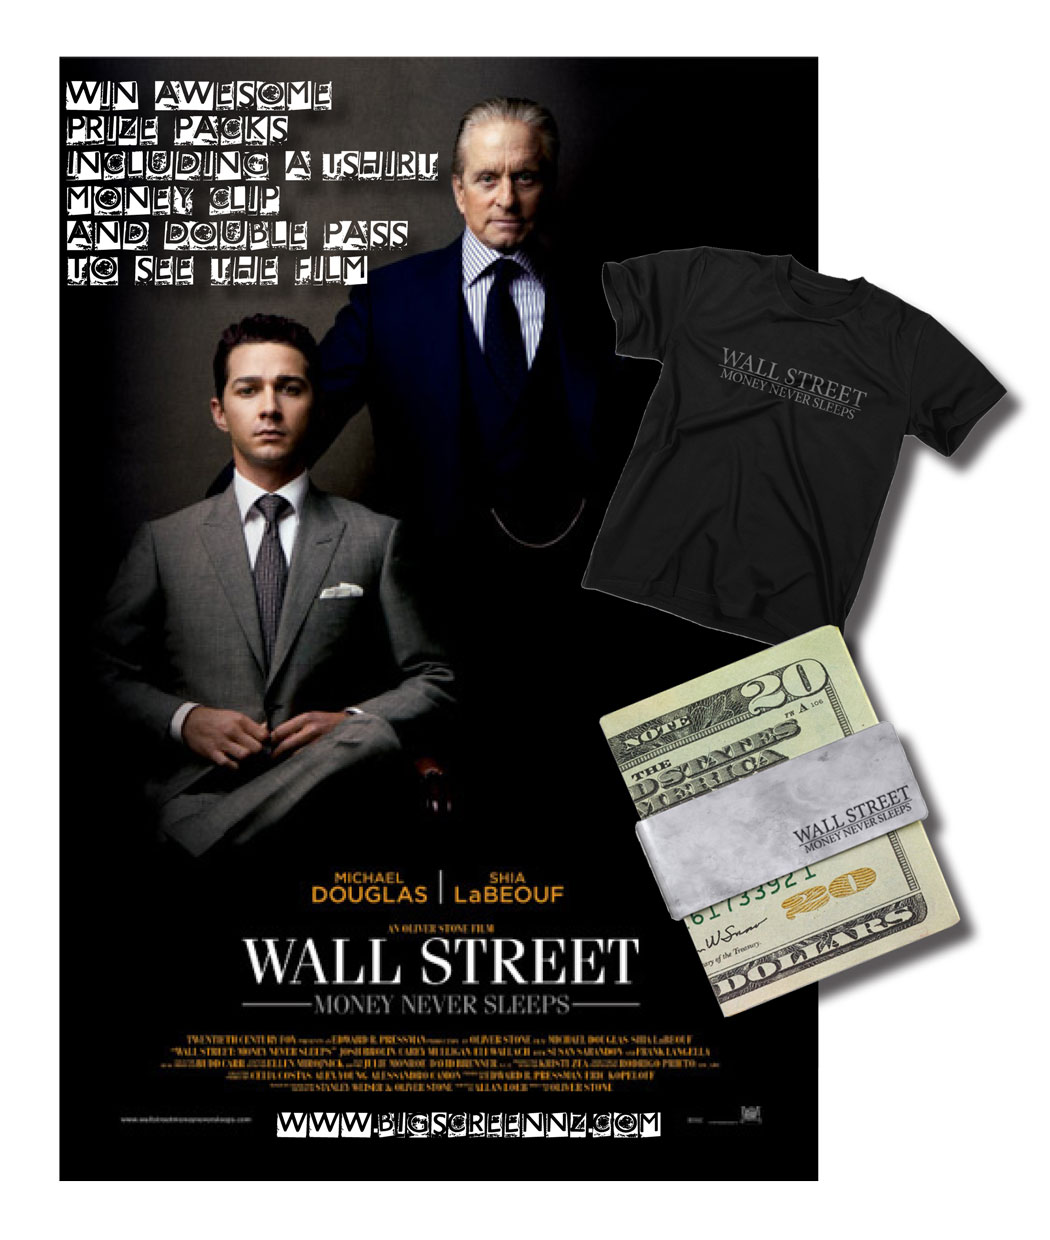 And is a suited-up shia labeouf enough to carry a sequel to the original wall street?